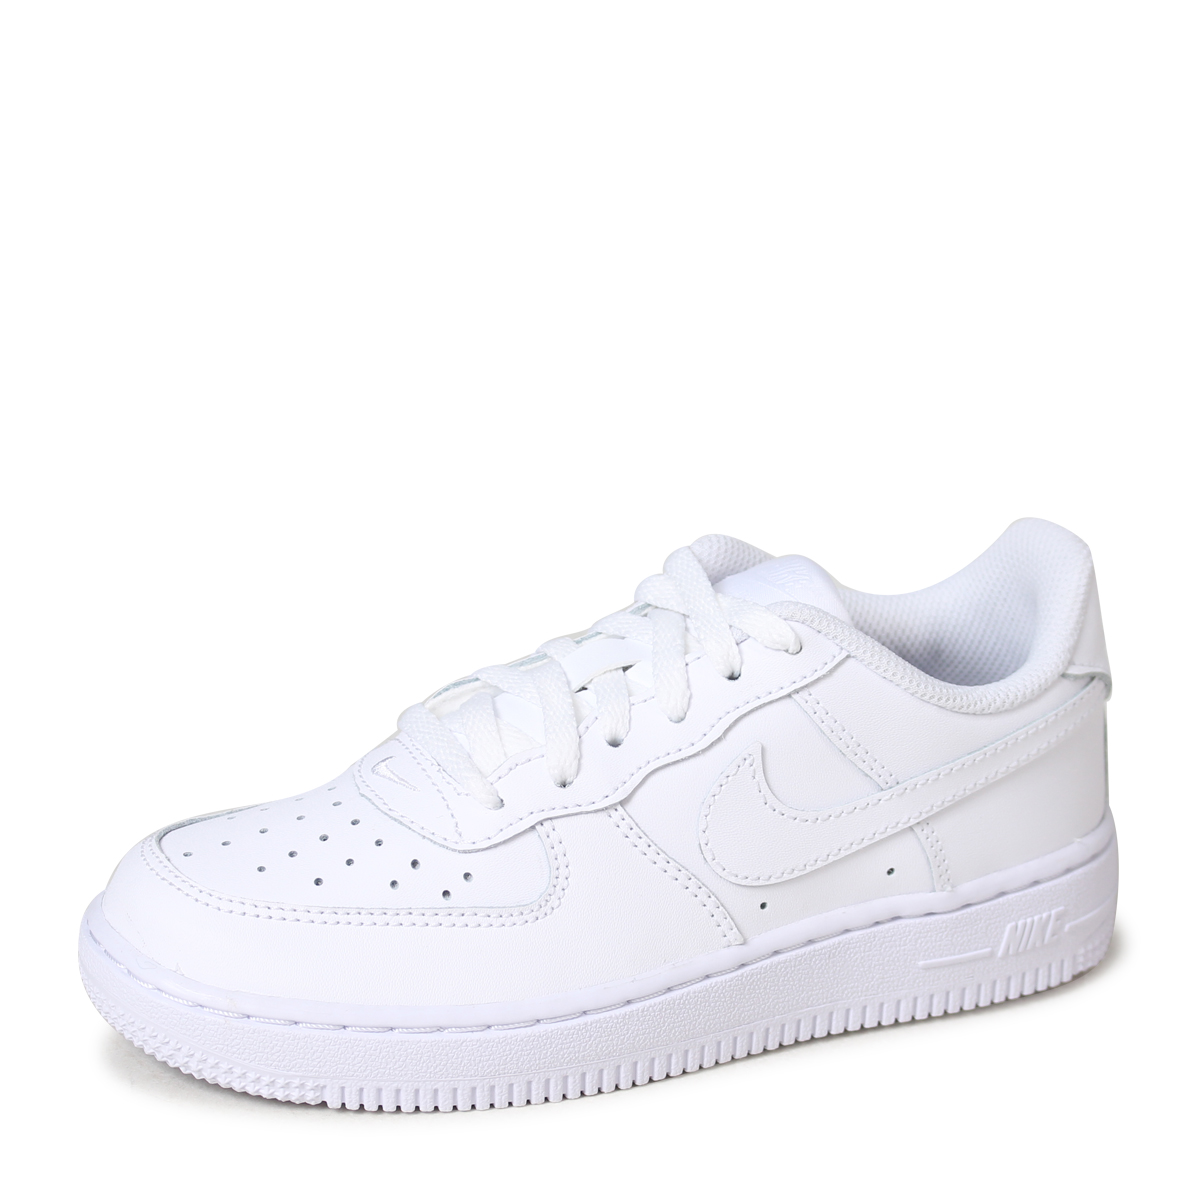 new concept 7f8ac 51b15 NIKE AIR FORCE 1 PS Nike air force 1 kids sneakers 314,193-117 white  load  planned Shinnyu load in reservation product 5 1 containing   184